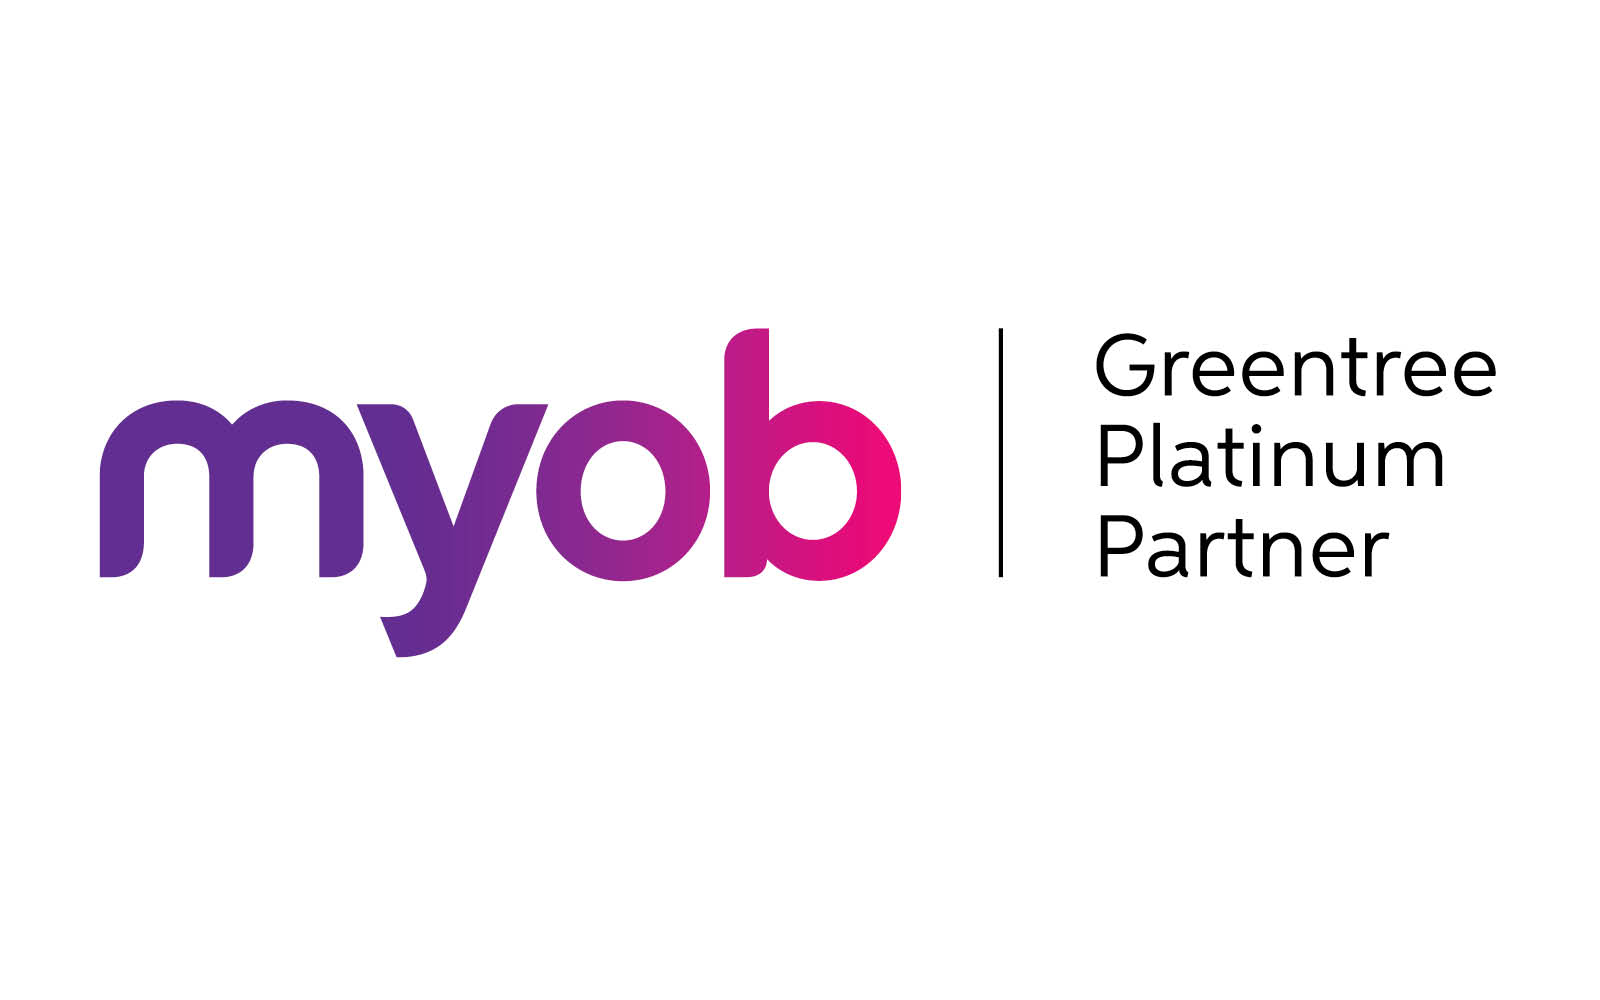 MYOB Greentree Platinum Partner